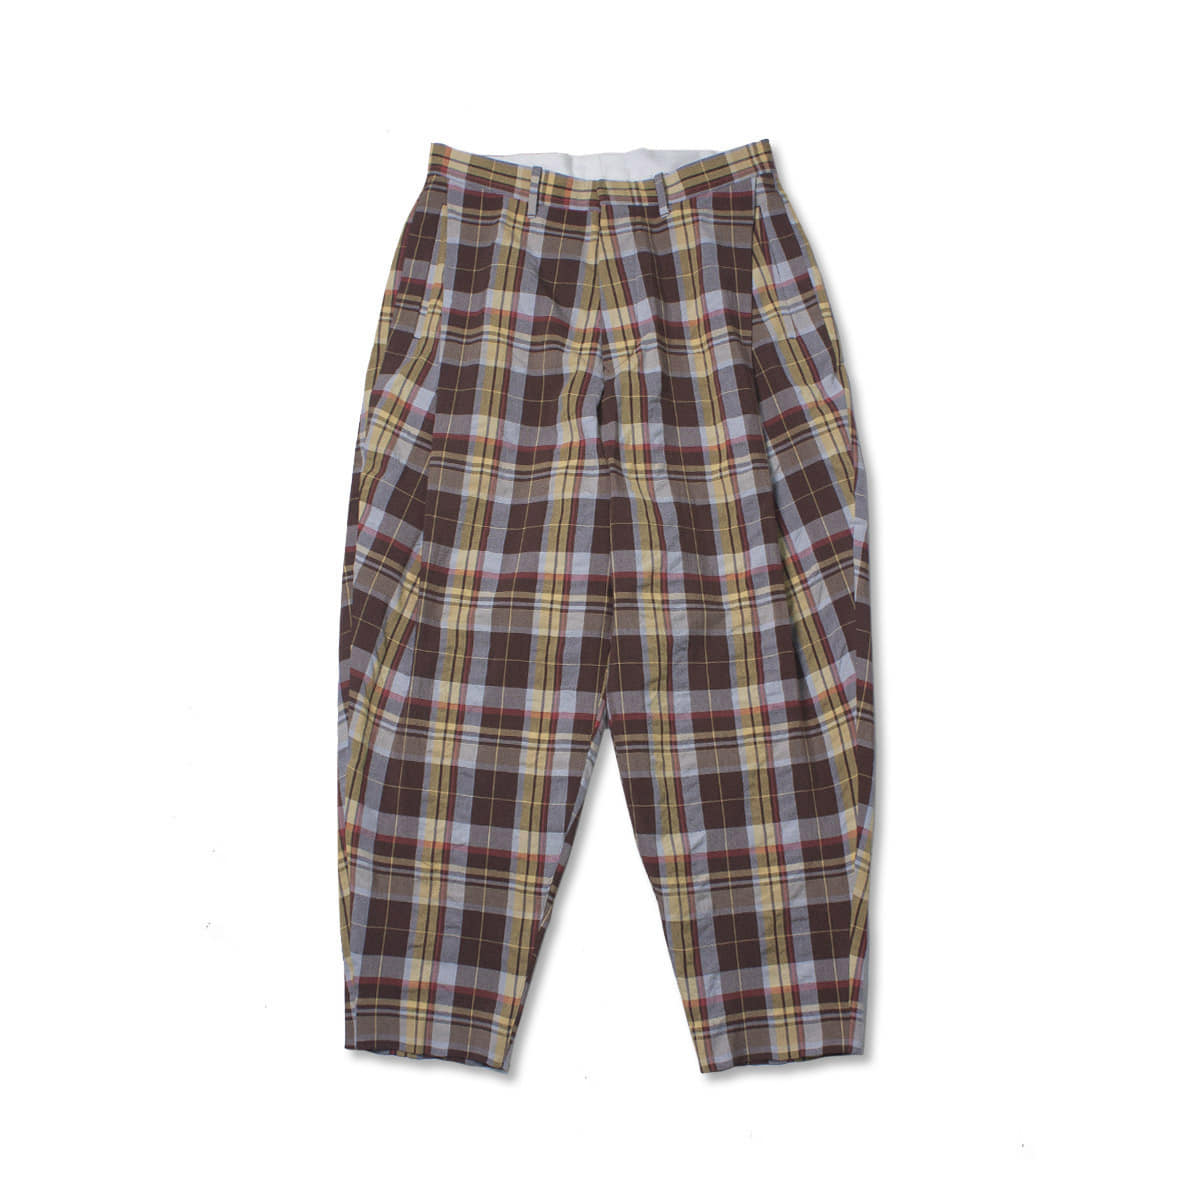 [HAVERSACK] MARDRAS CHECK PLEATED PANTS 'BROWN / YELLOW'